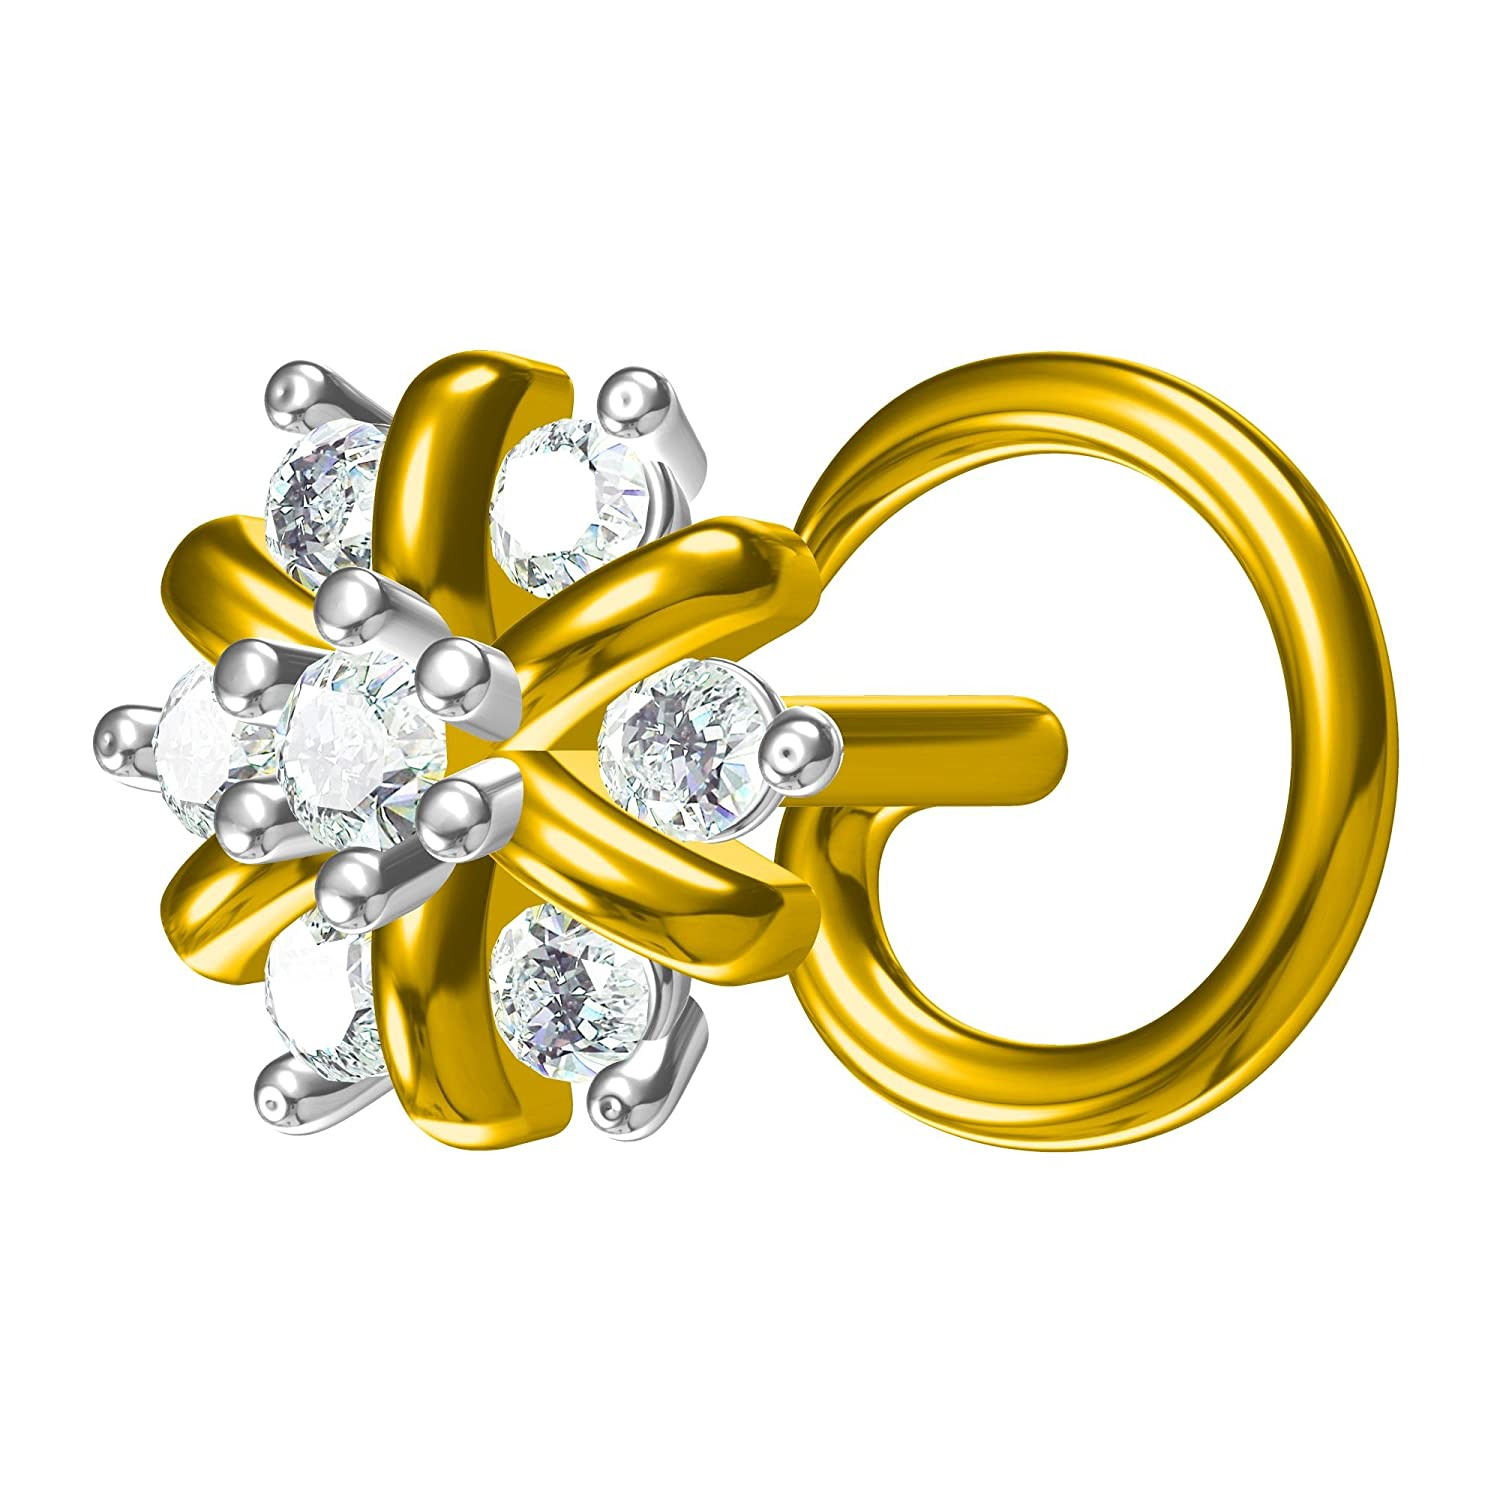 Silverraj 14K White Gold Plated Fn Simulated Diamond Studded Nose Stud Pin Body Piercing Jeweley